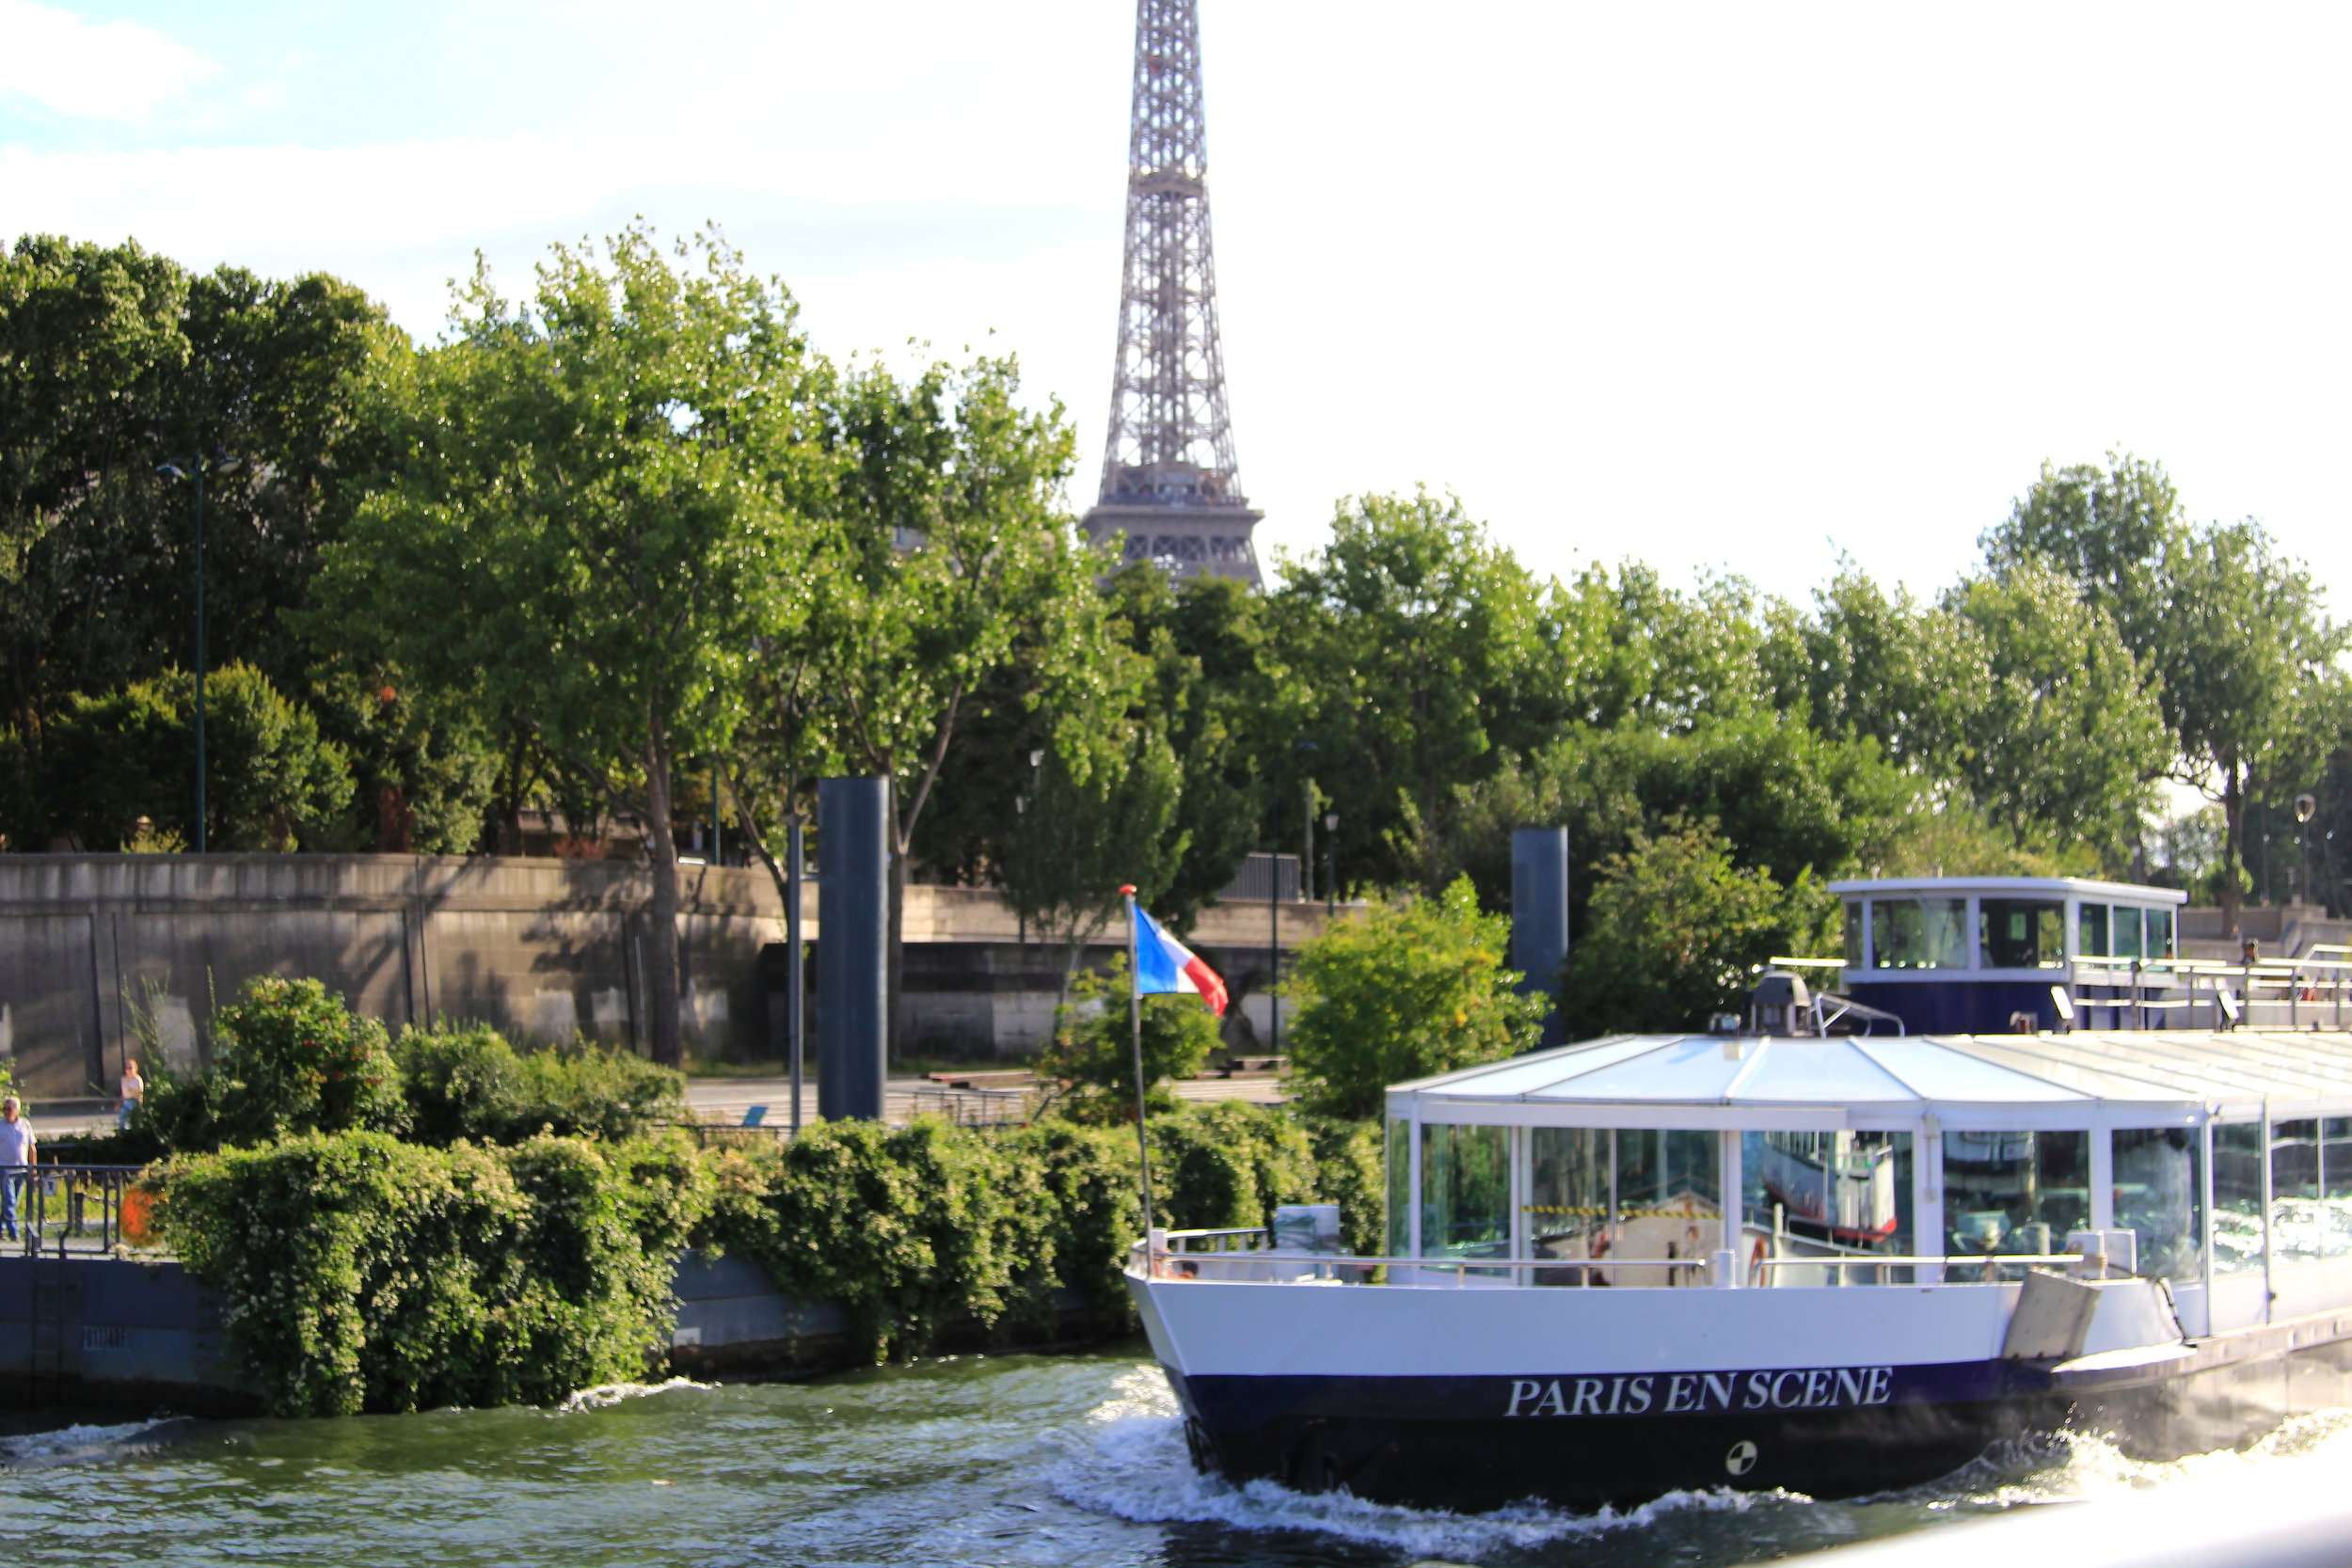 Paris riverboats - a must-do when visiting the city!